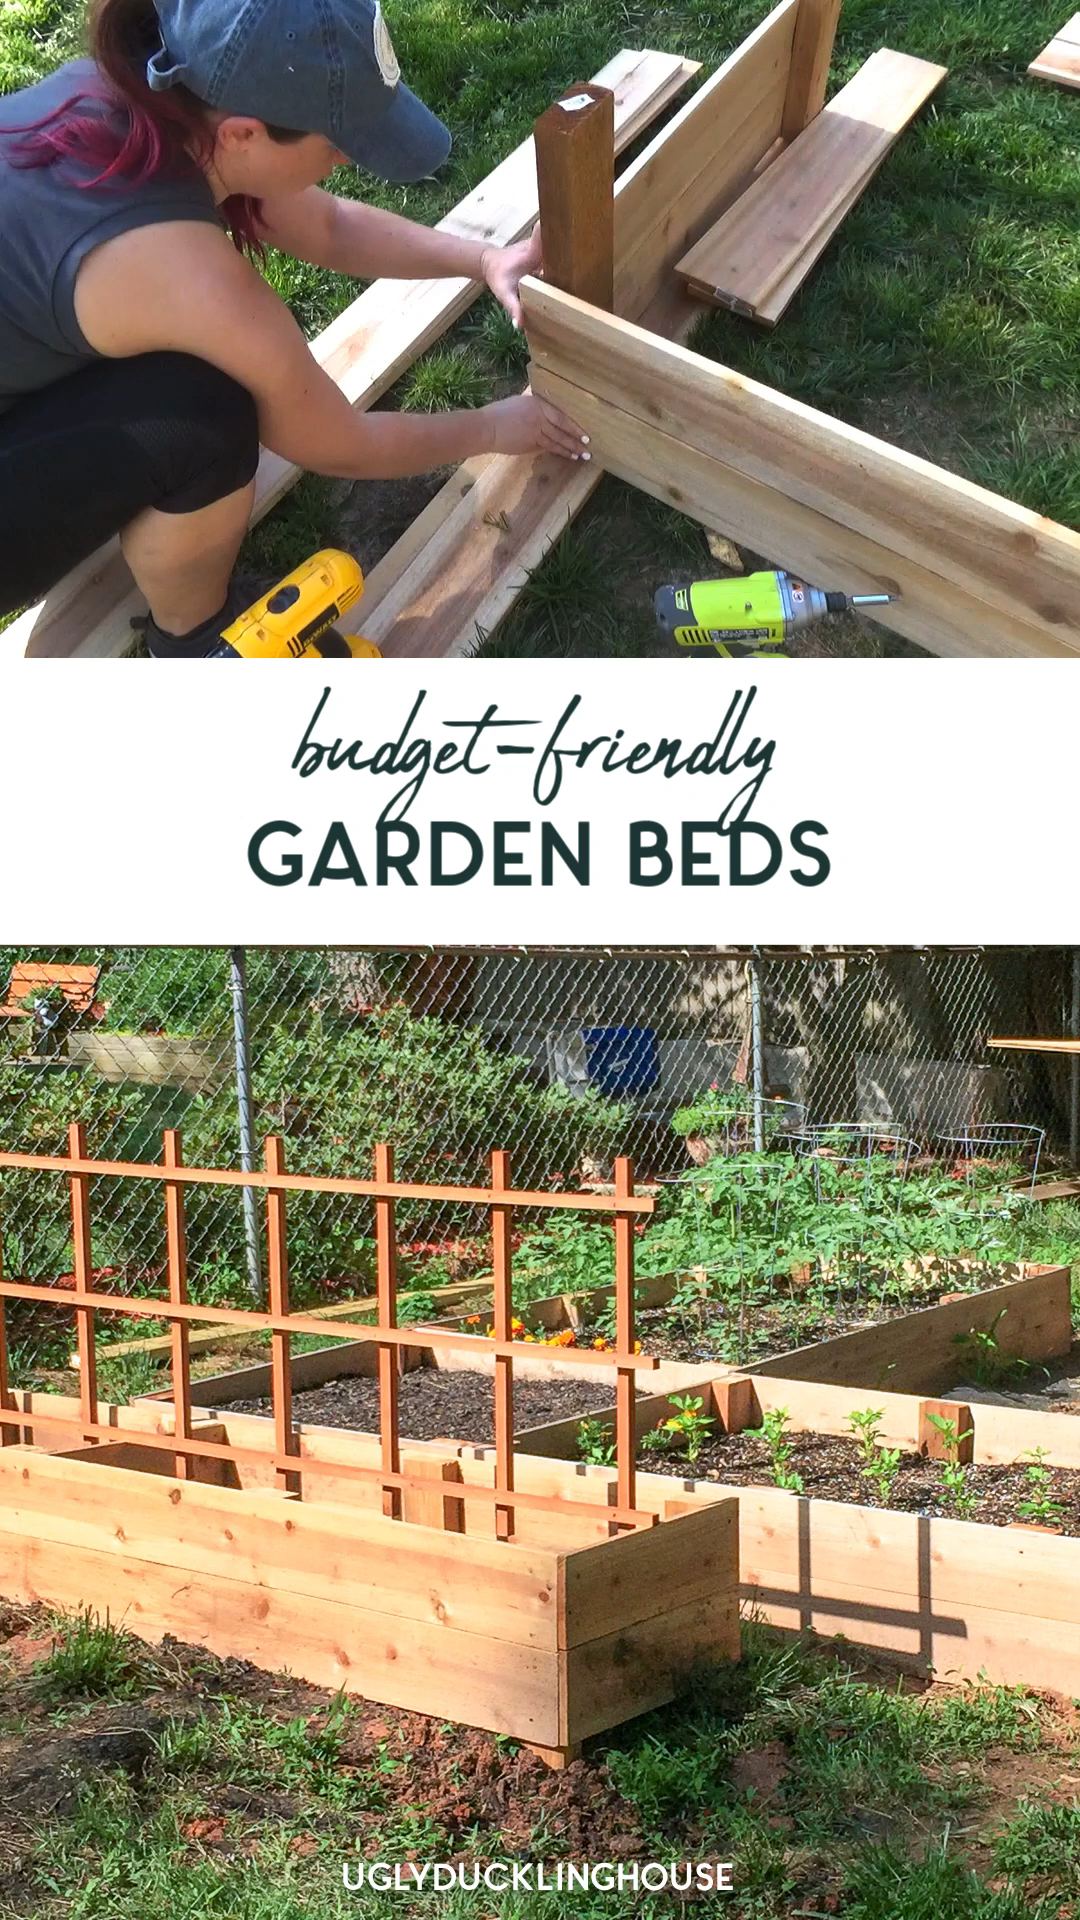 DIY Budget-Friendly Garden Beds